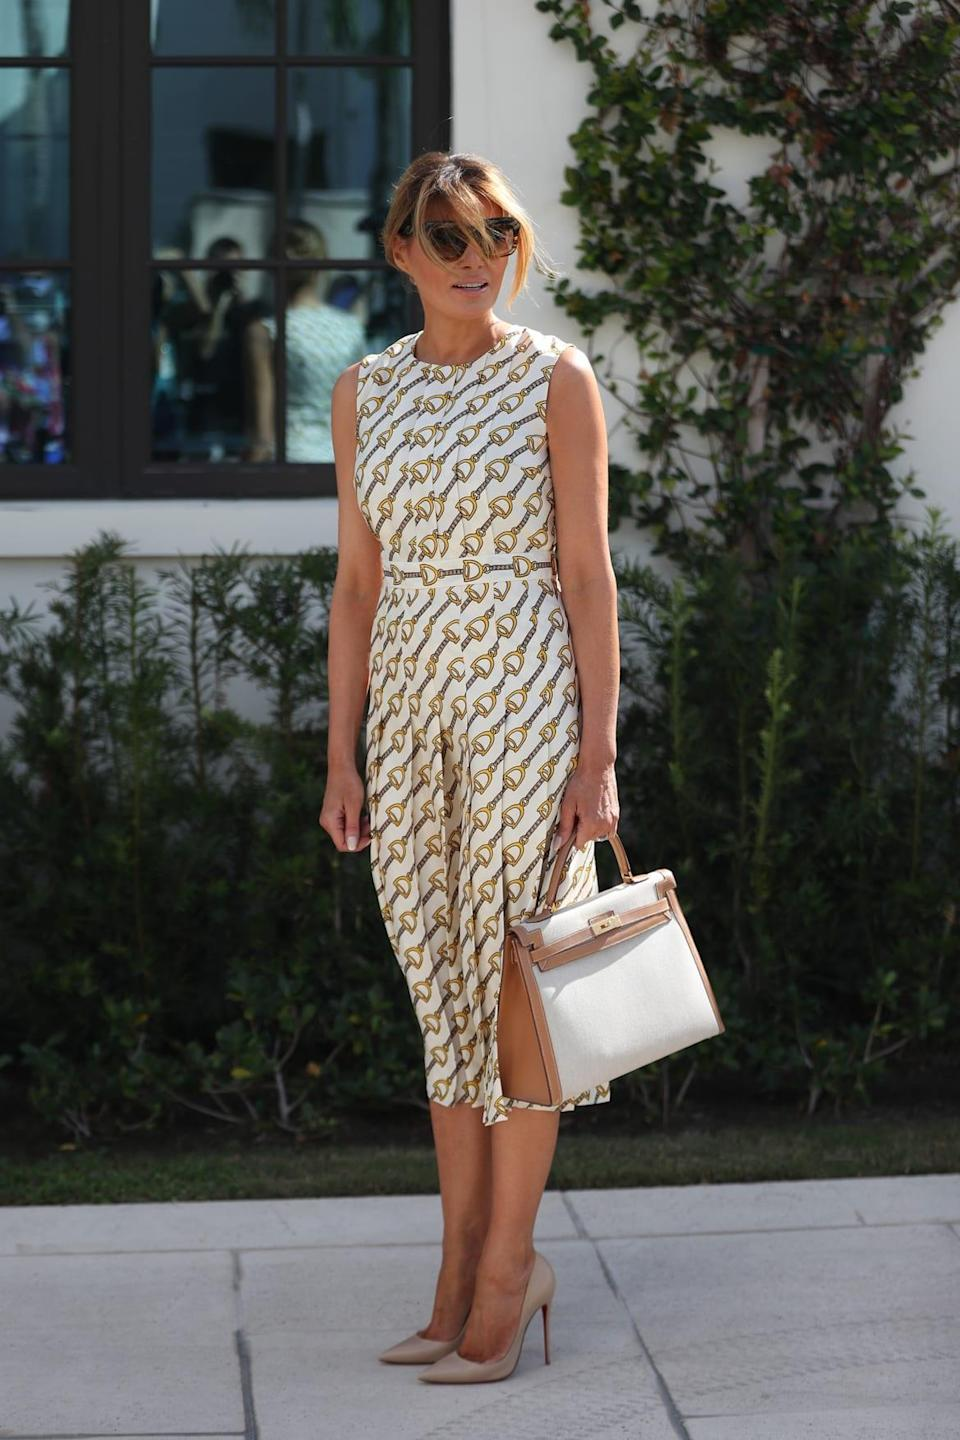 """<div class=""""inline-image__caption""""><p>Melania leaves after casting her vote at the Morton and Barbara Mandel Recreation Center polling place on Nov. 3, 2020 in Palm Beach, Florida.</p></div> <div class=""""inline-image__credit"""">Photo by Joe Raedle/Getty Images</div>"""